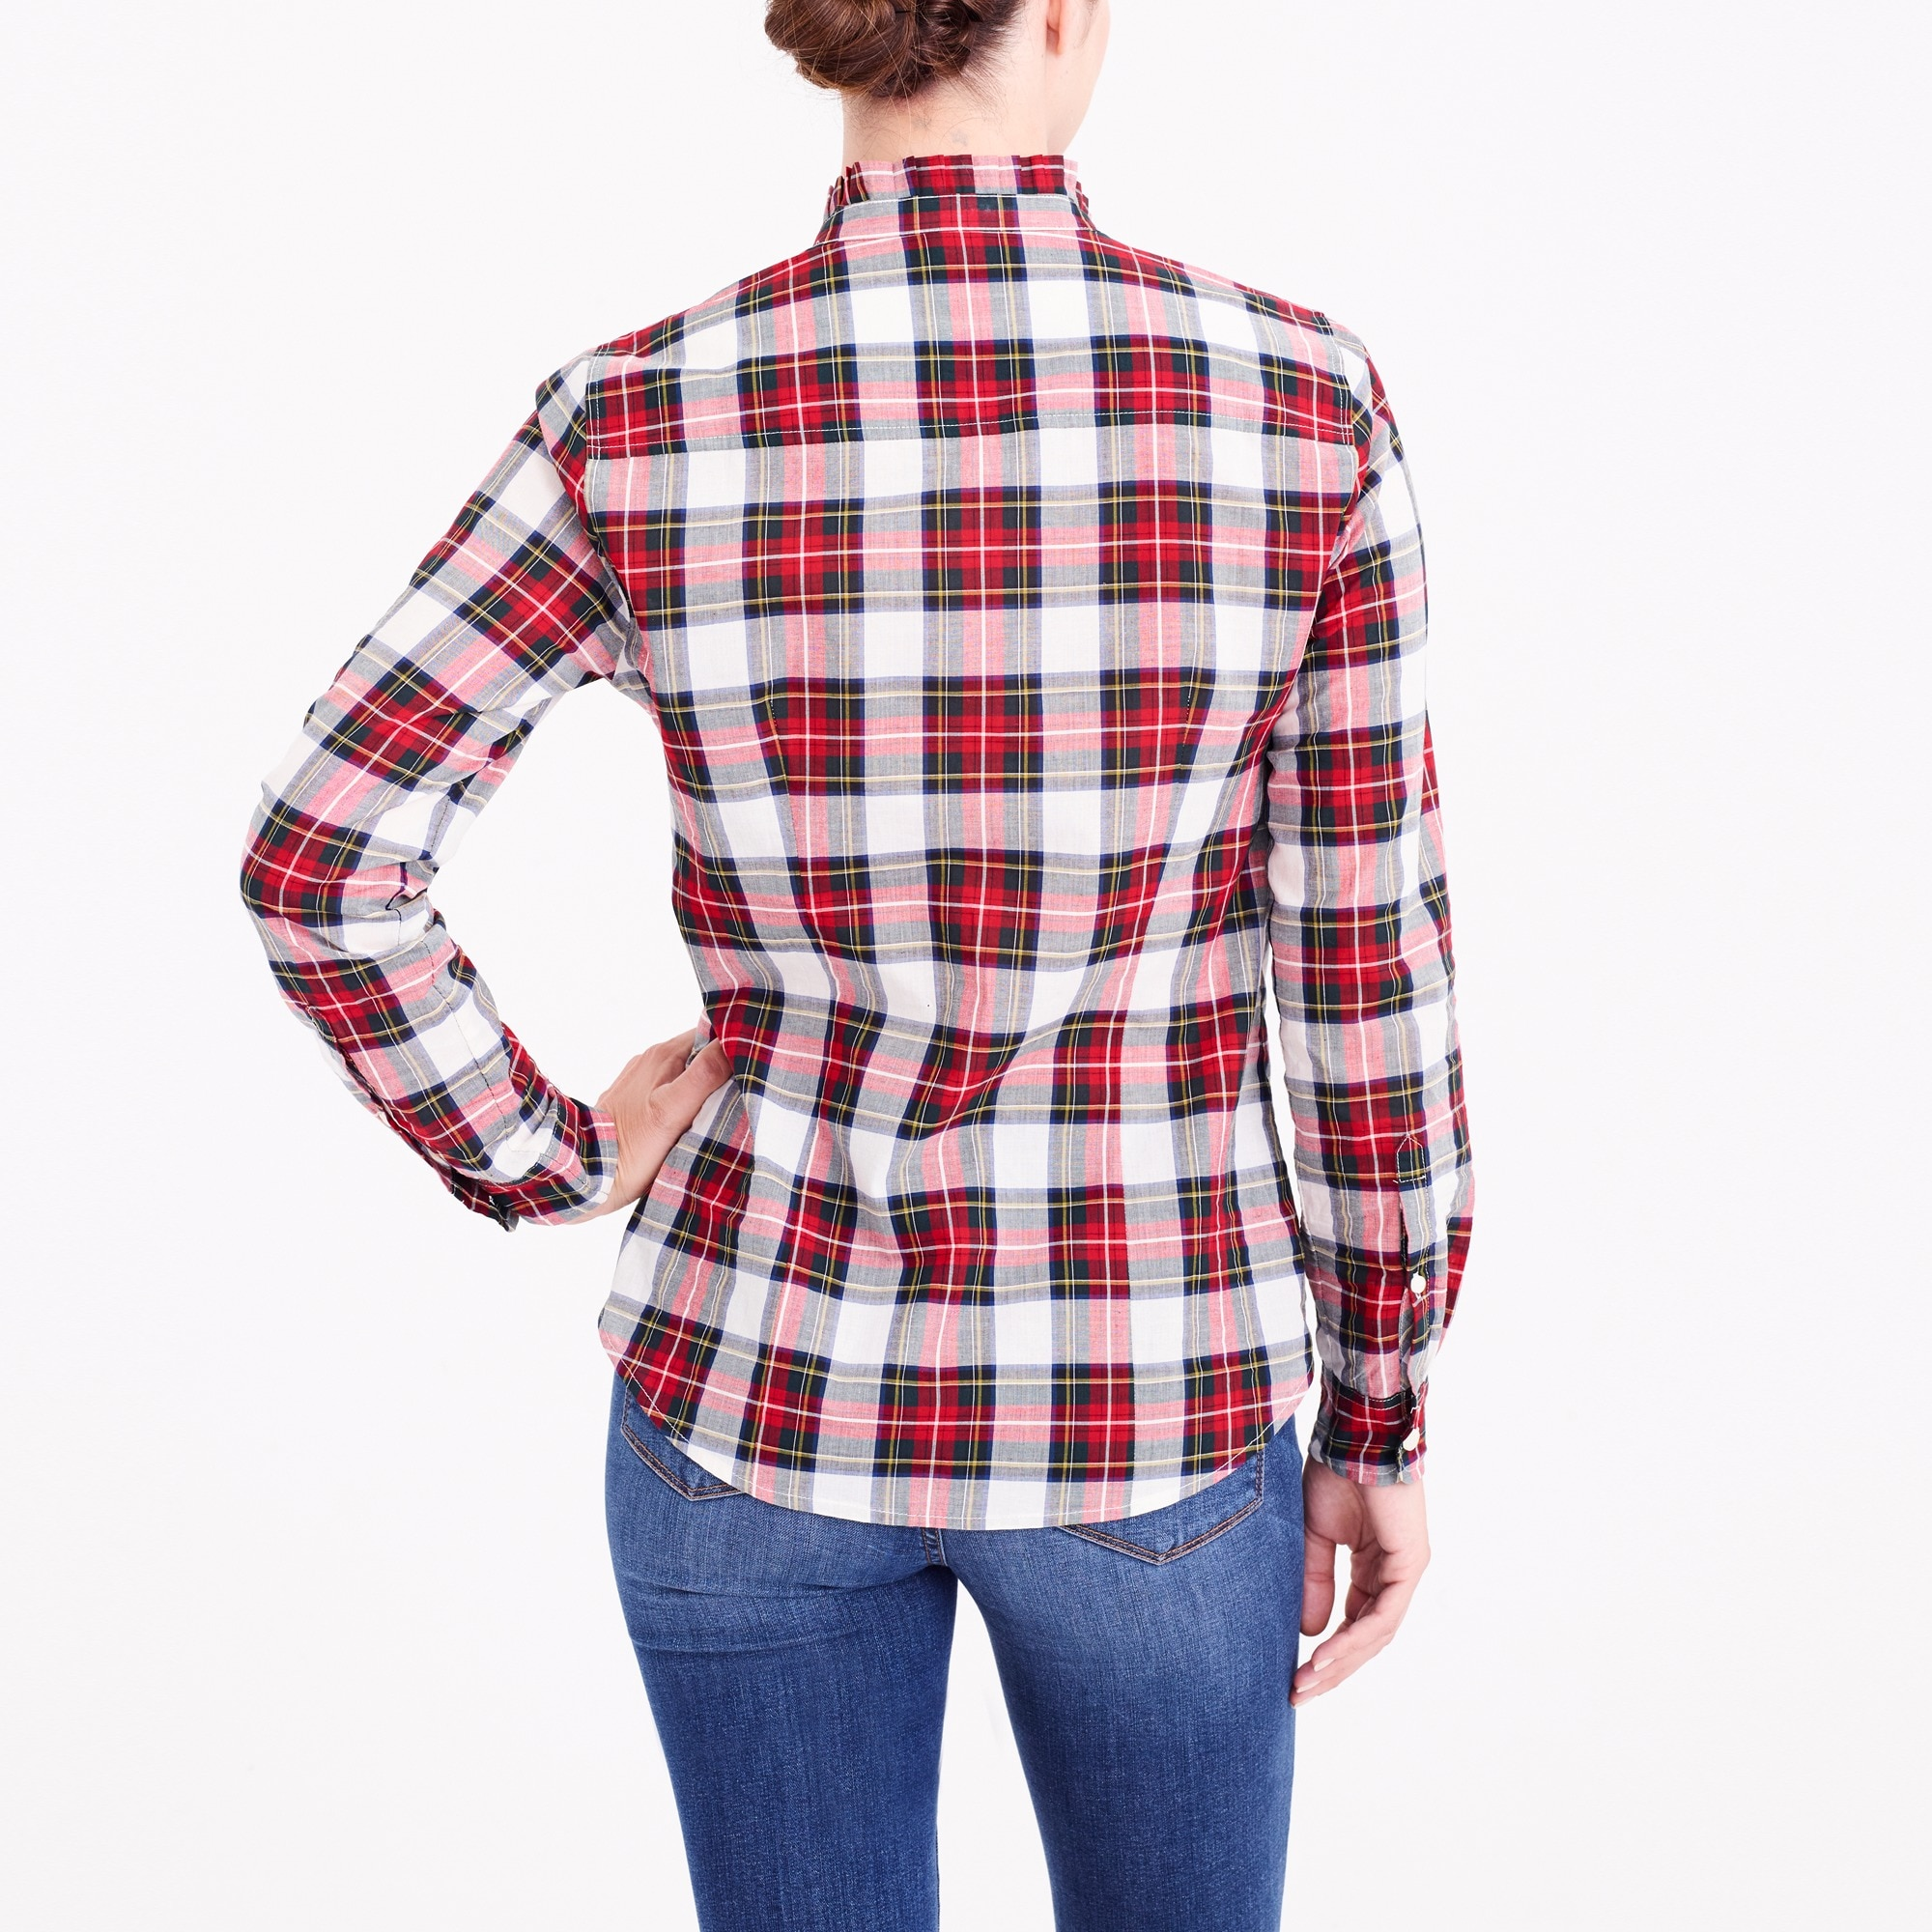 Ruffle-front plaid shirt